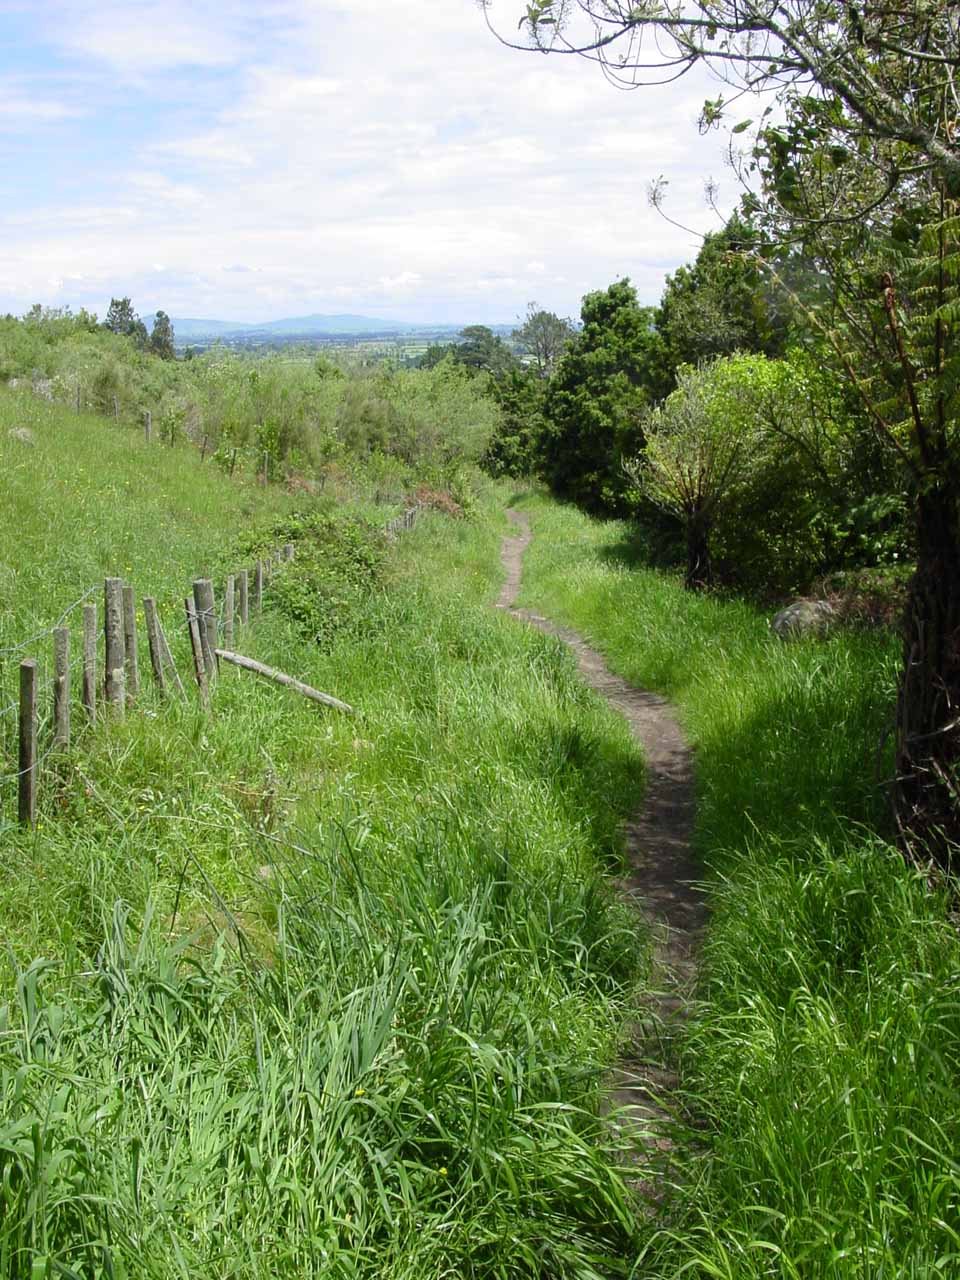 Following the fringes of farmland towards the trailhead of Wairere Falls